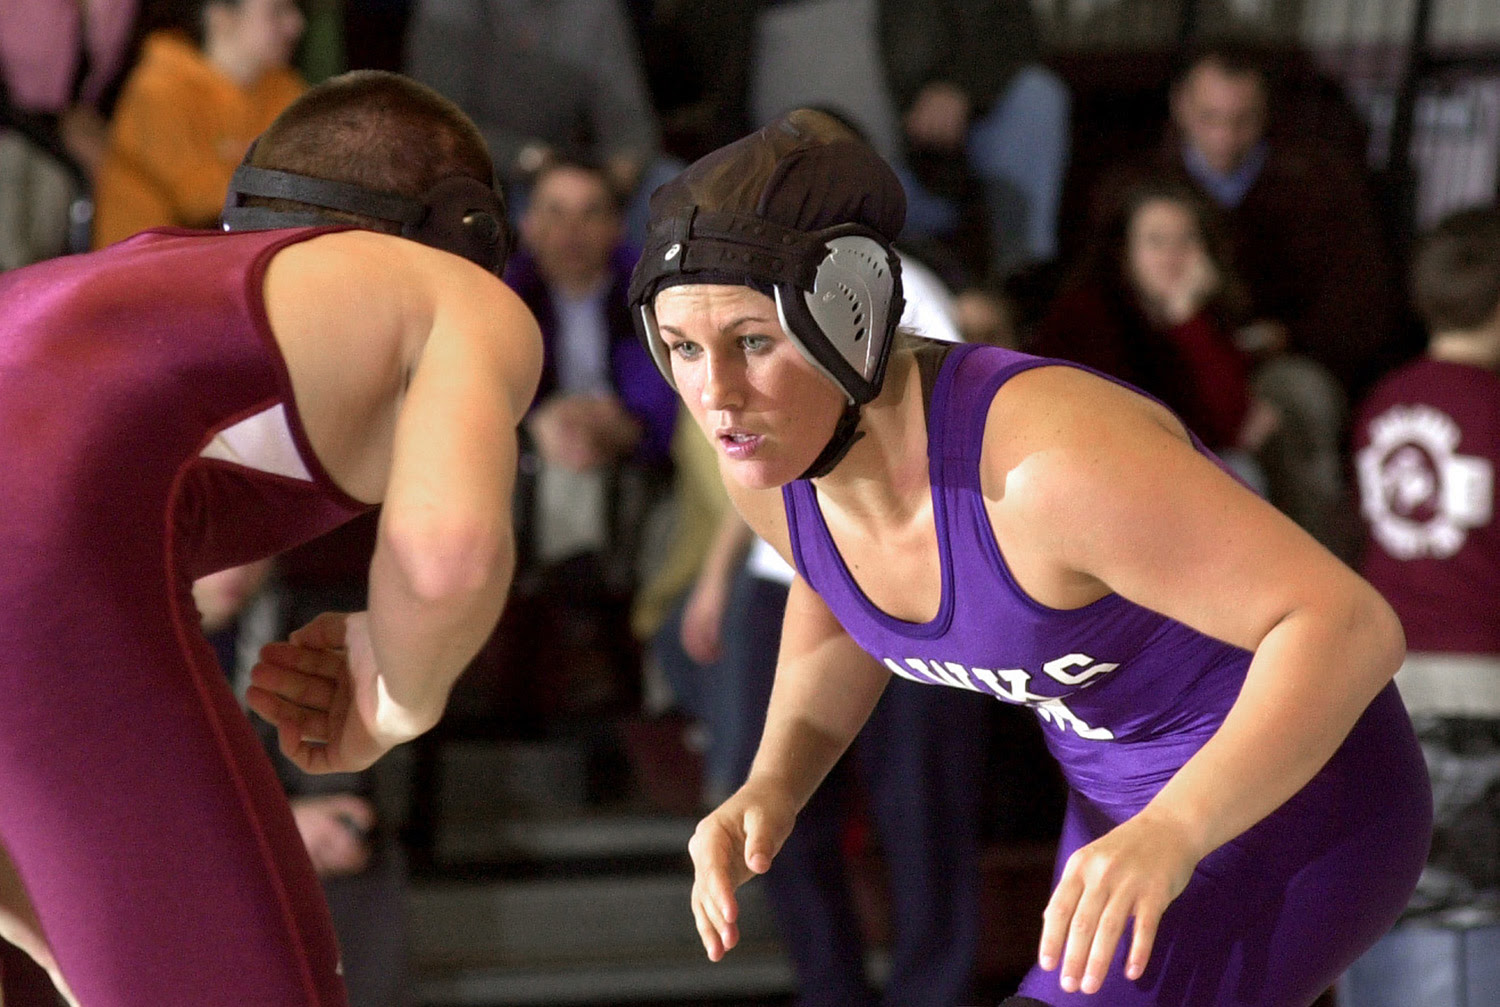 Deanna Rix, wrestling for Marshwood High in January 2005, takes on Noble's Heath Devoll in the 130-pound class. She won the match.